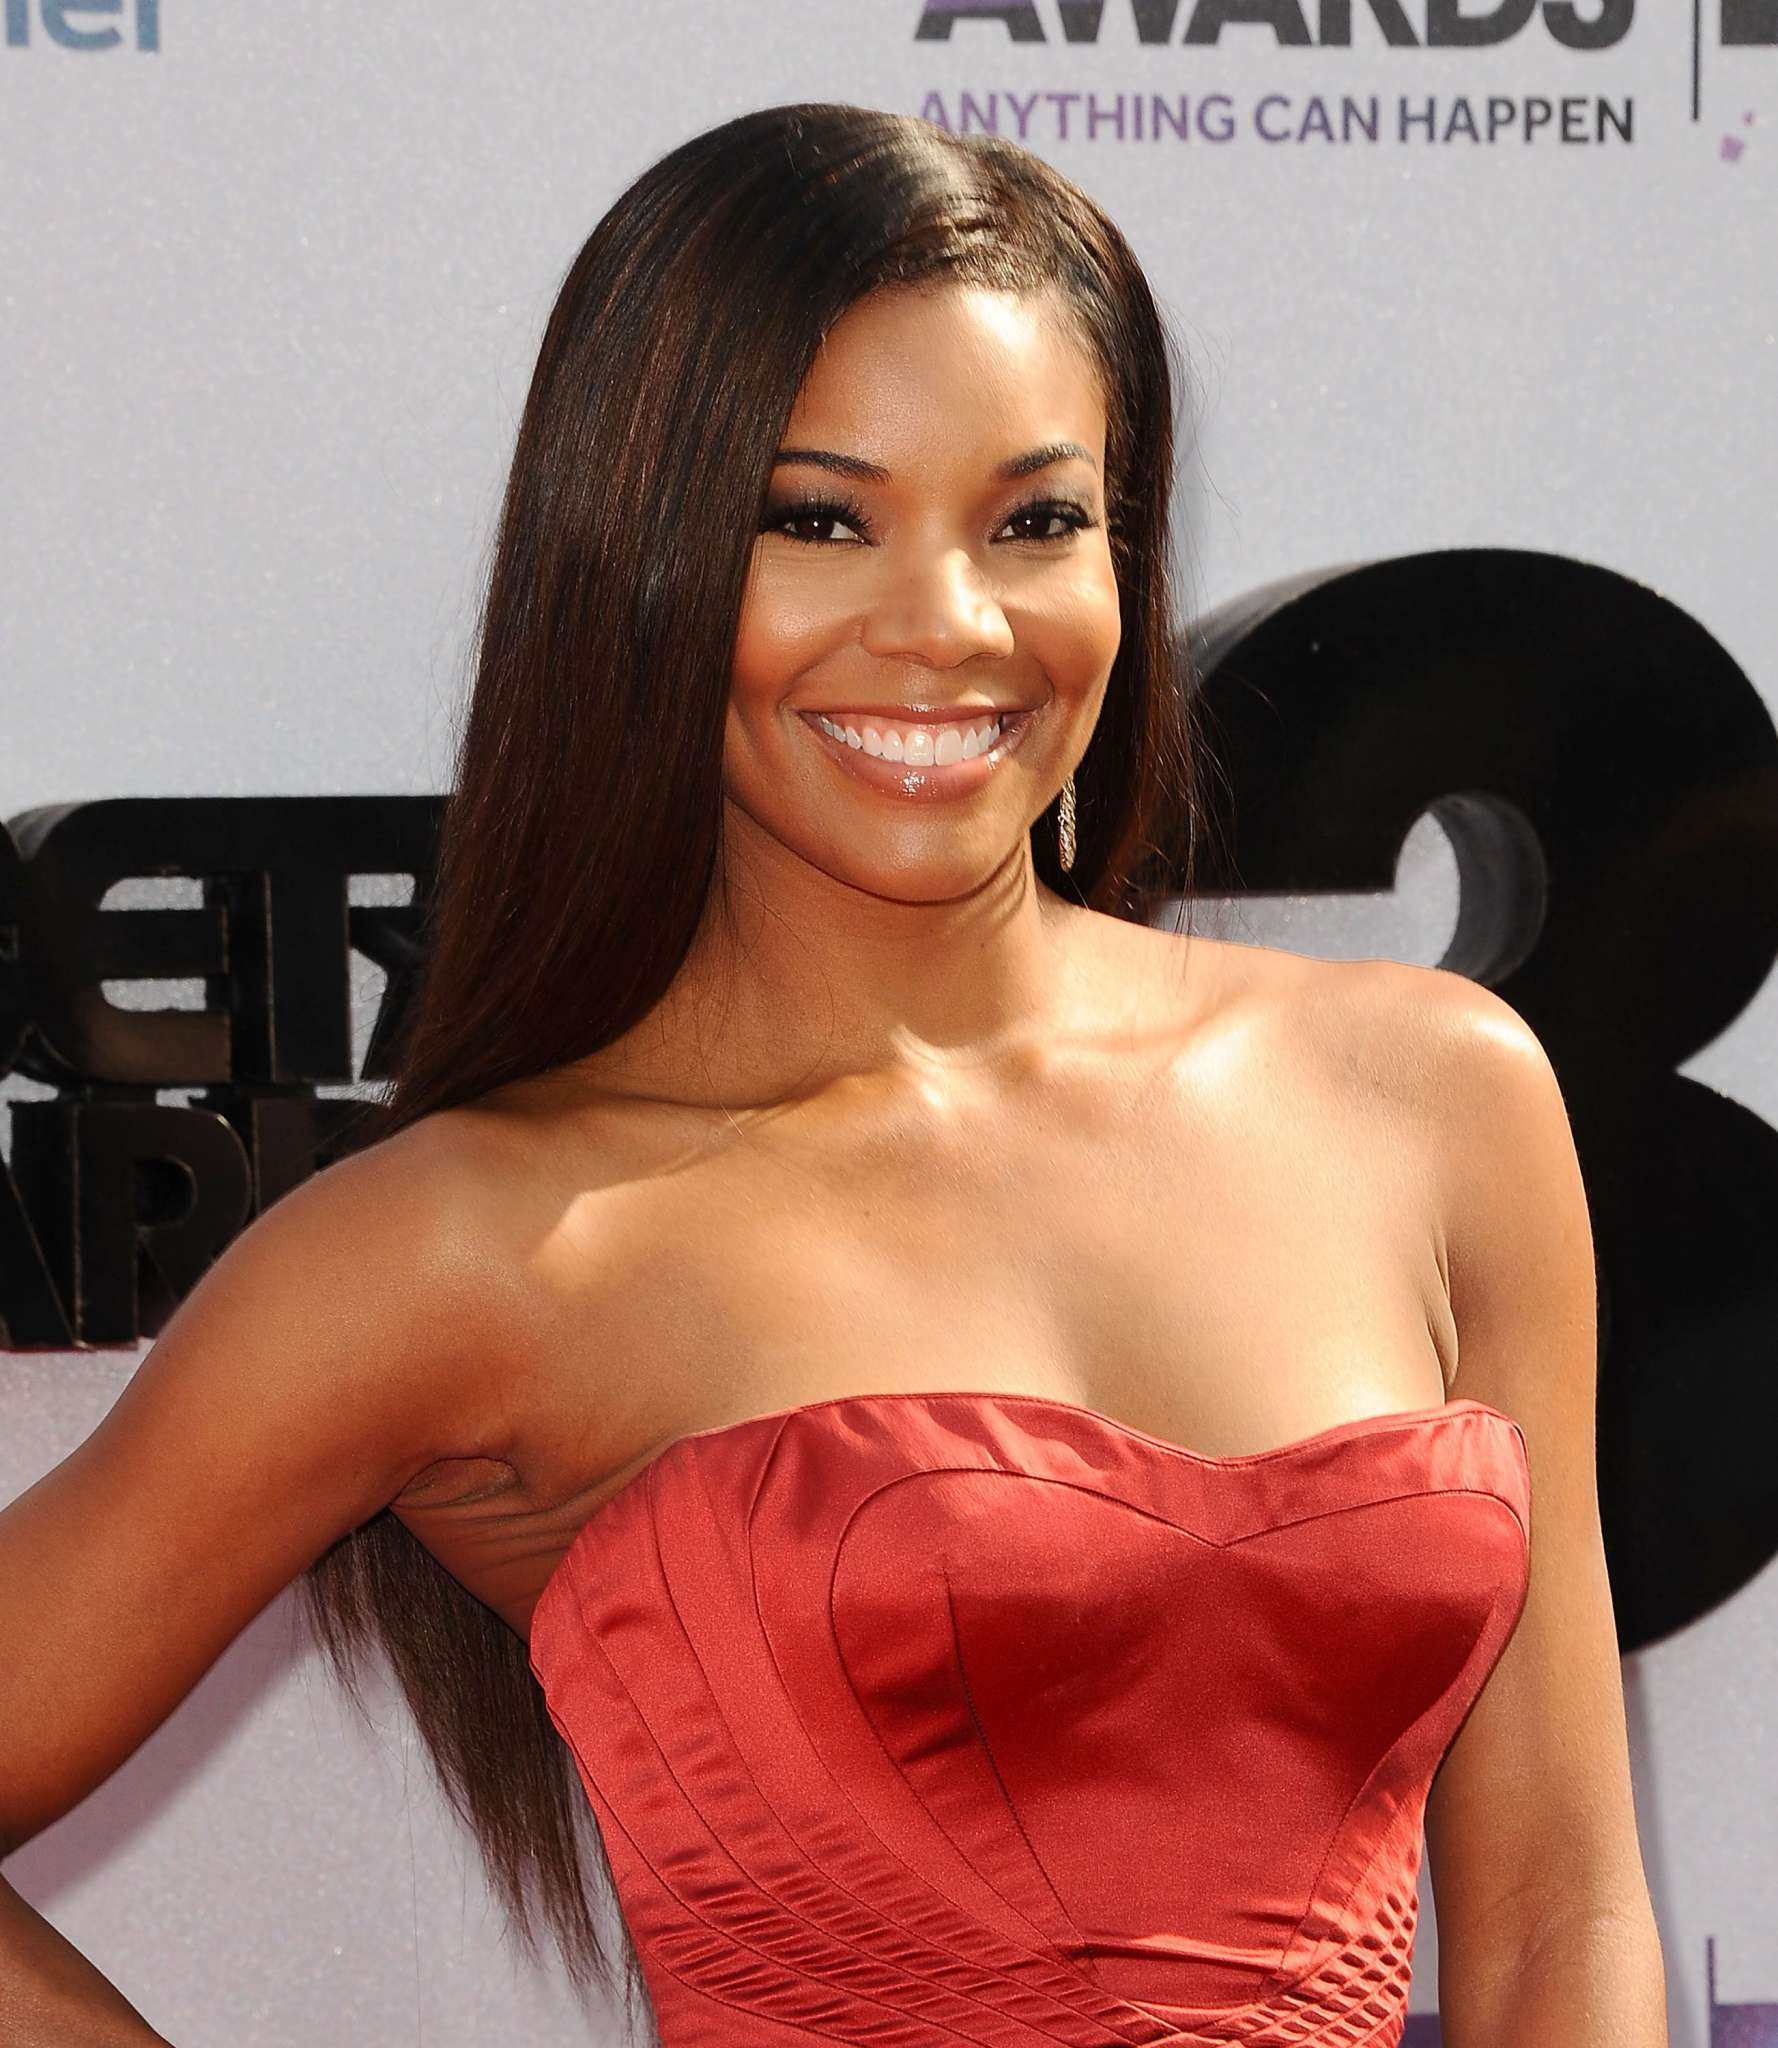 gabrielle-union-celebrates-dwyane-wade-check-out-her-message